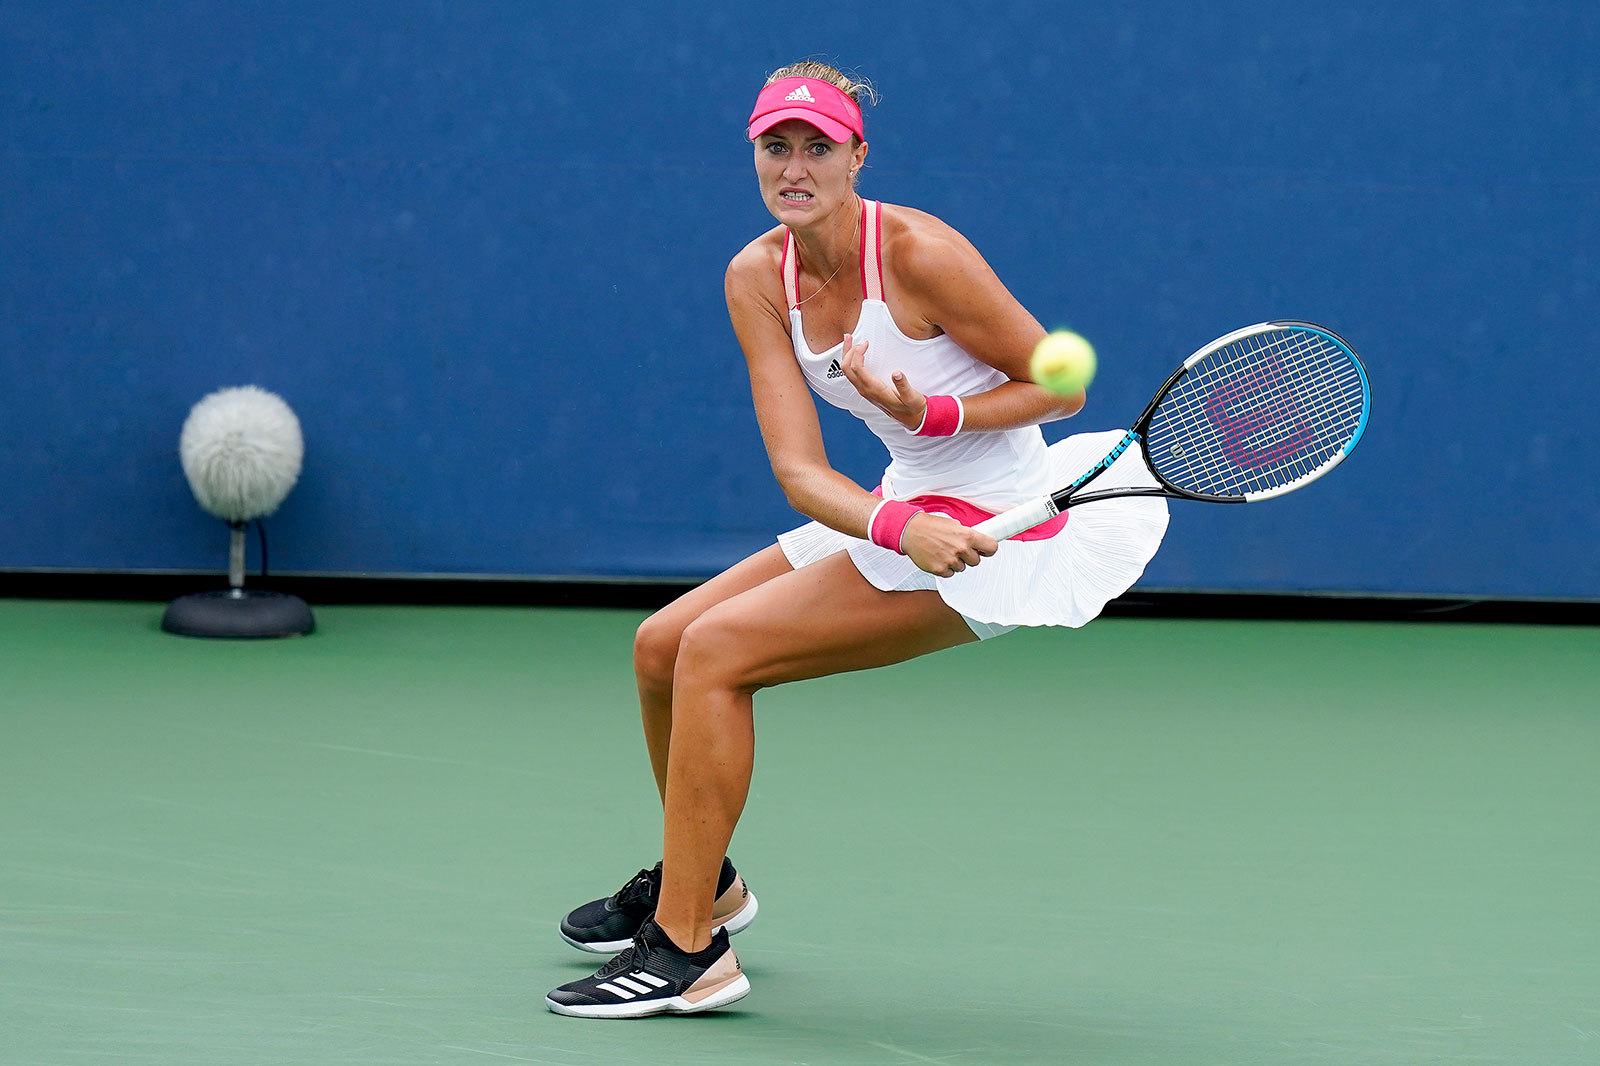 Kristina Mladenovic returns a shot during the second round of the US Open on Wednesday, September 2.